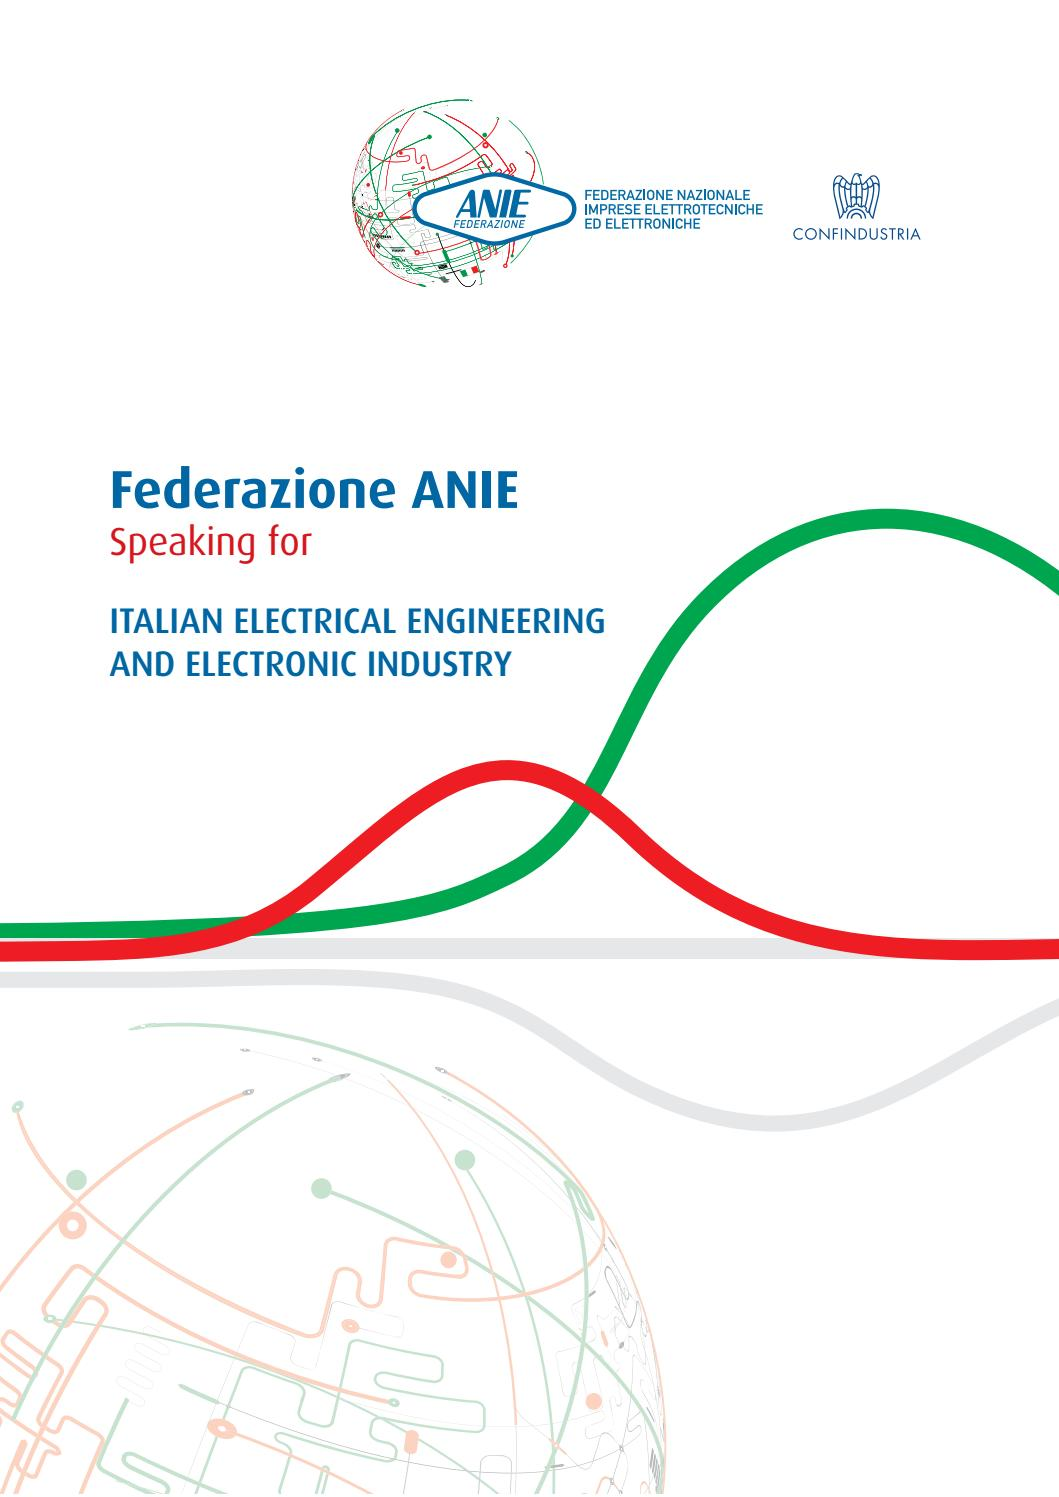 Federazione Anie Speaking For Italian Electrical Engineering And Powertronixinductor1jpg Electronic Industry By Issuu